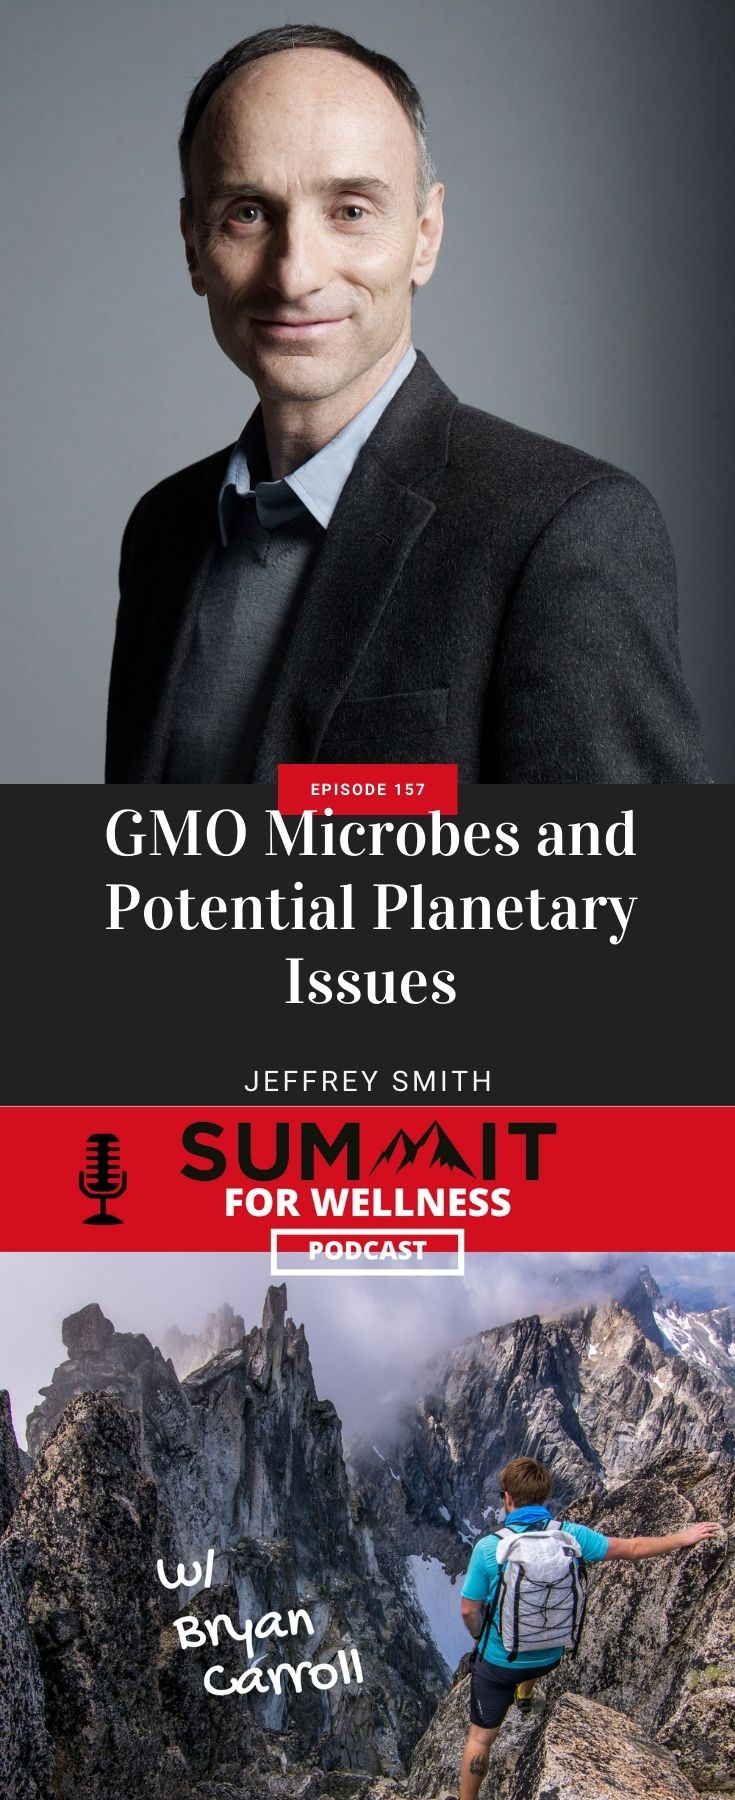 Jeffrey Smith shares how GMO microbes can impact the planet in dangerous ways